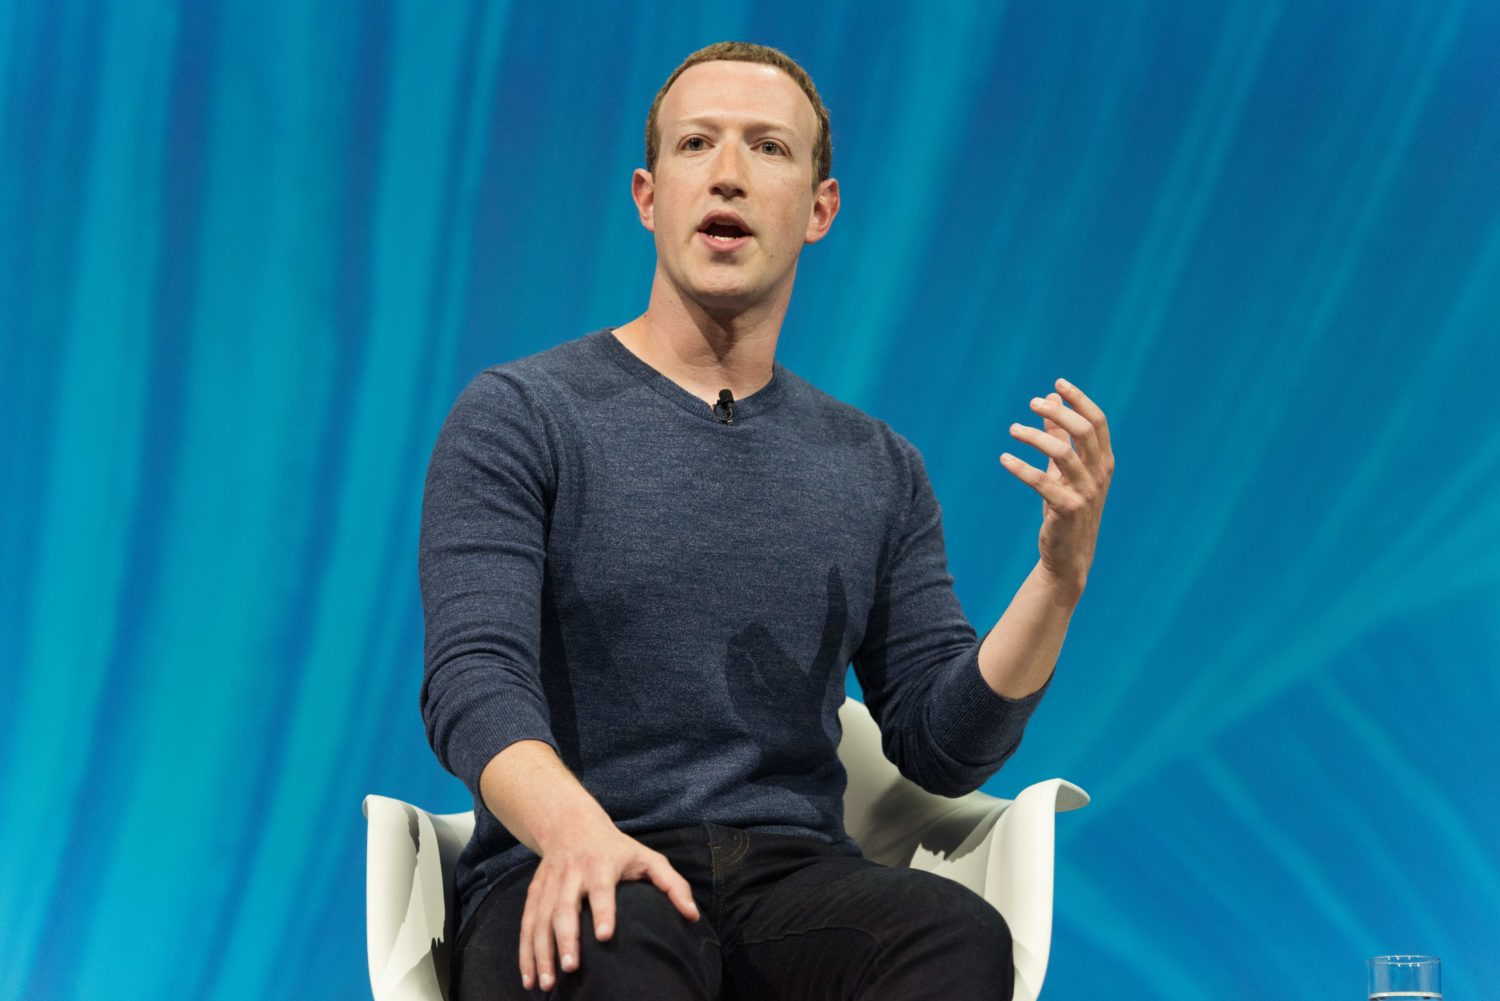 Facebook to Roll Out 'GlobalCoin' Cryptocurrency in 2020, Report Says